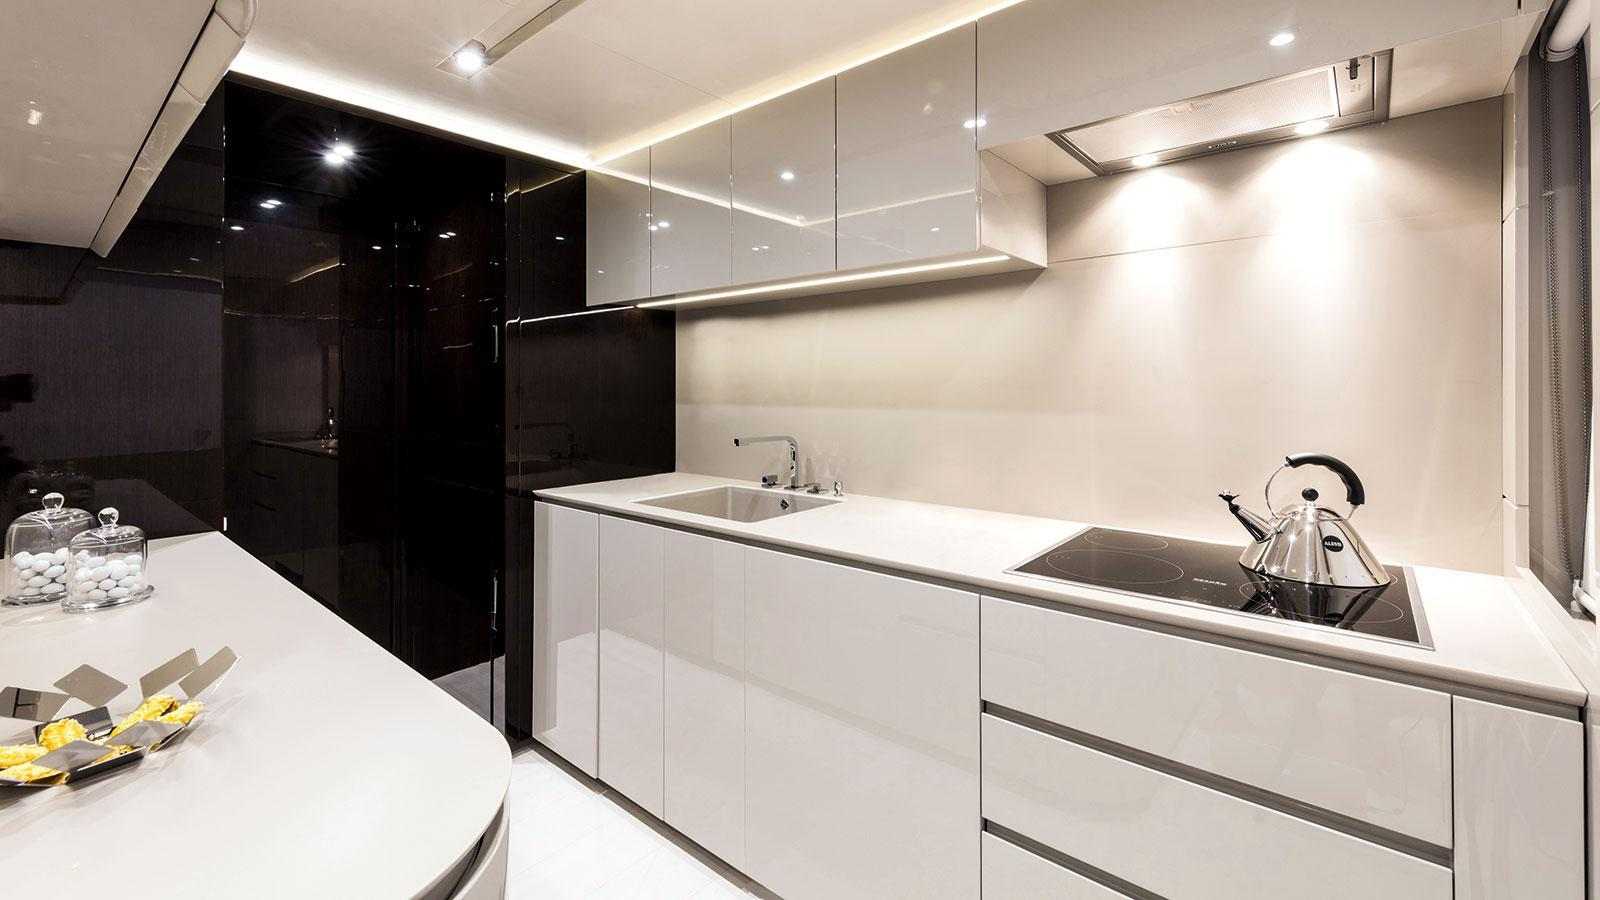 maryliz-motor-yacht-dl-2015-34m-galley